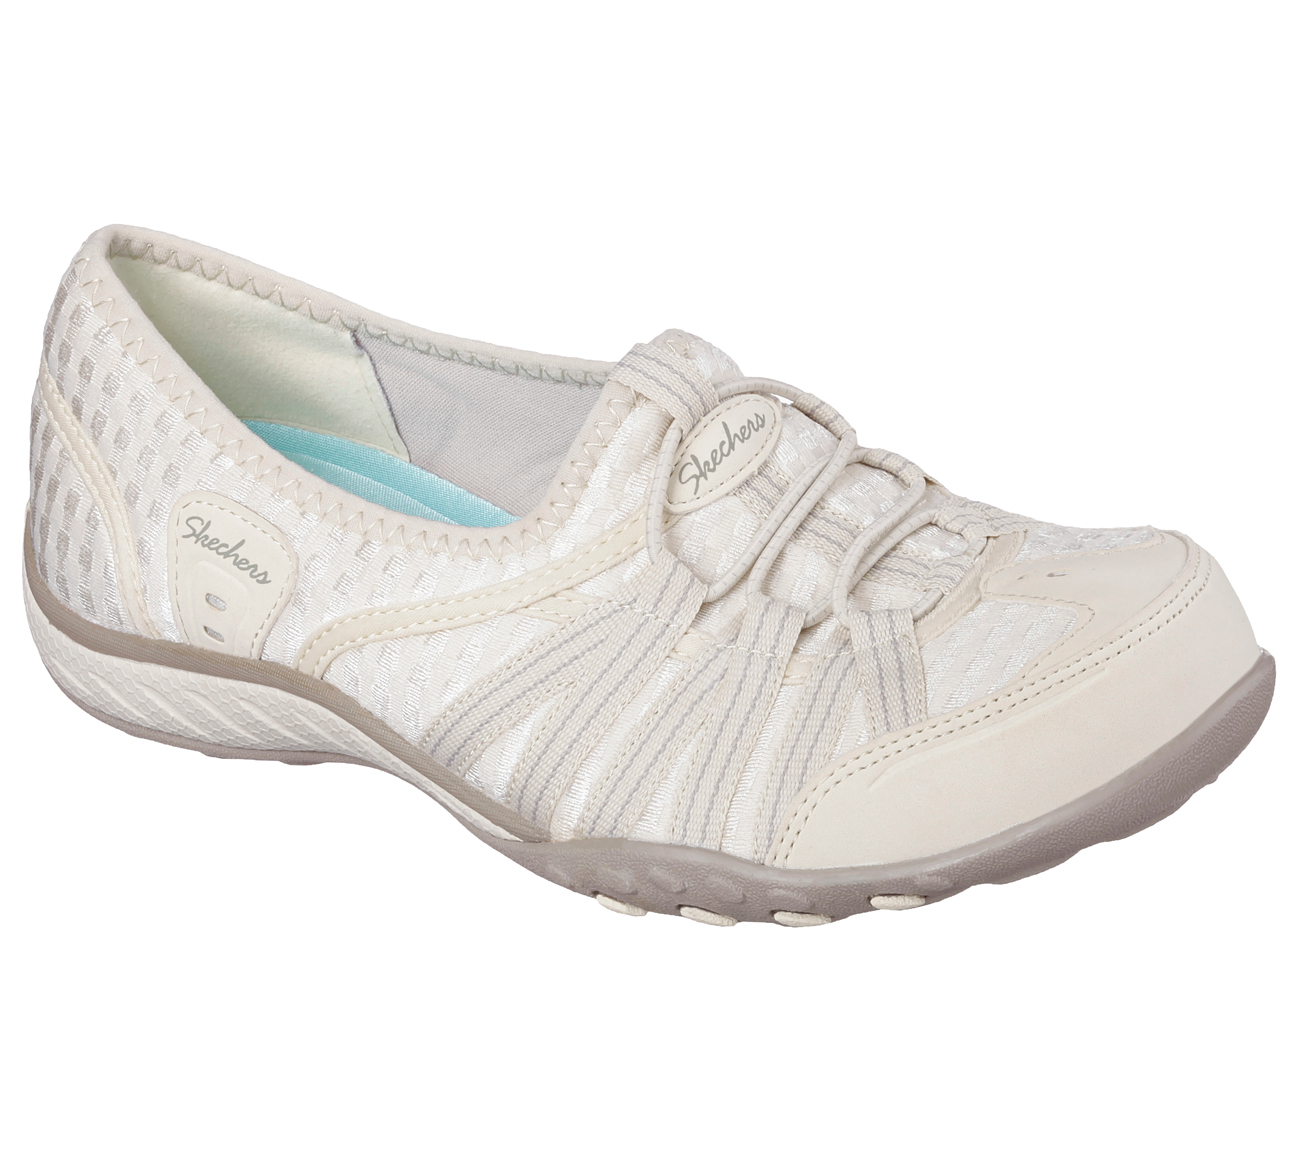 Skechers Relaxed Fit Breathe Easy Dimension Women S Slip On Shoes